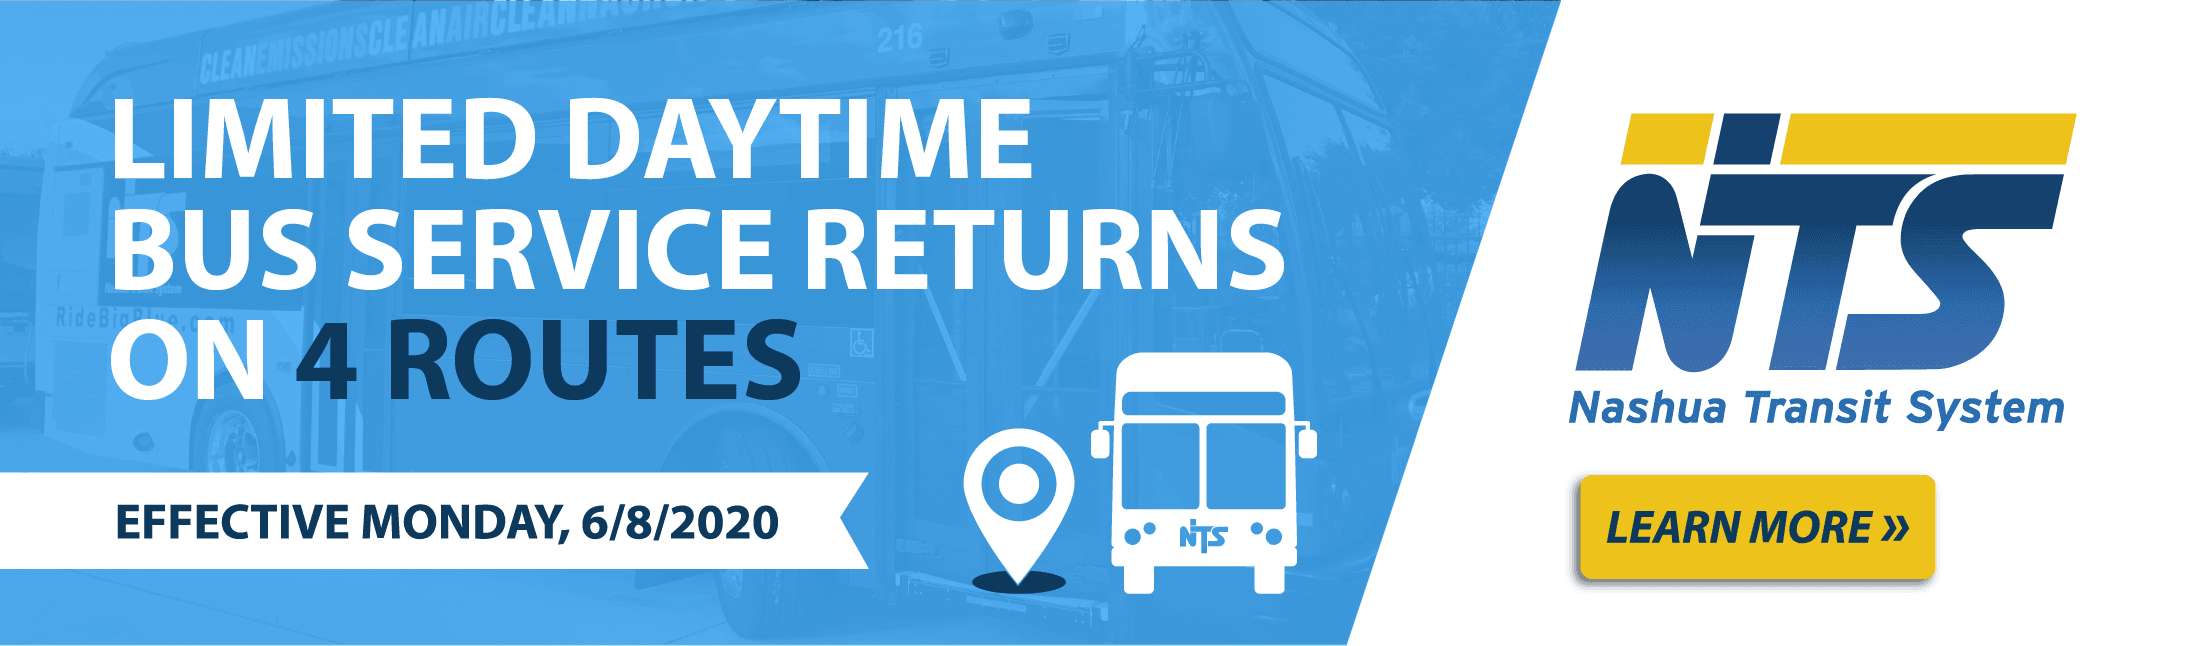 Limited Daytime bus service returns on 4 routes. Effective 6/8/2020